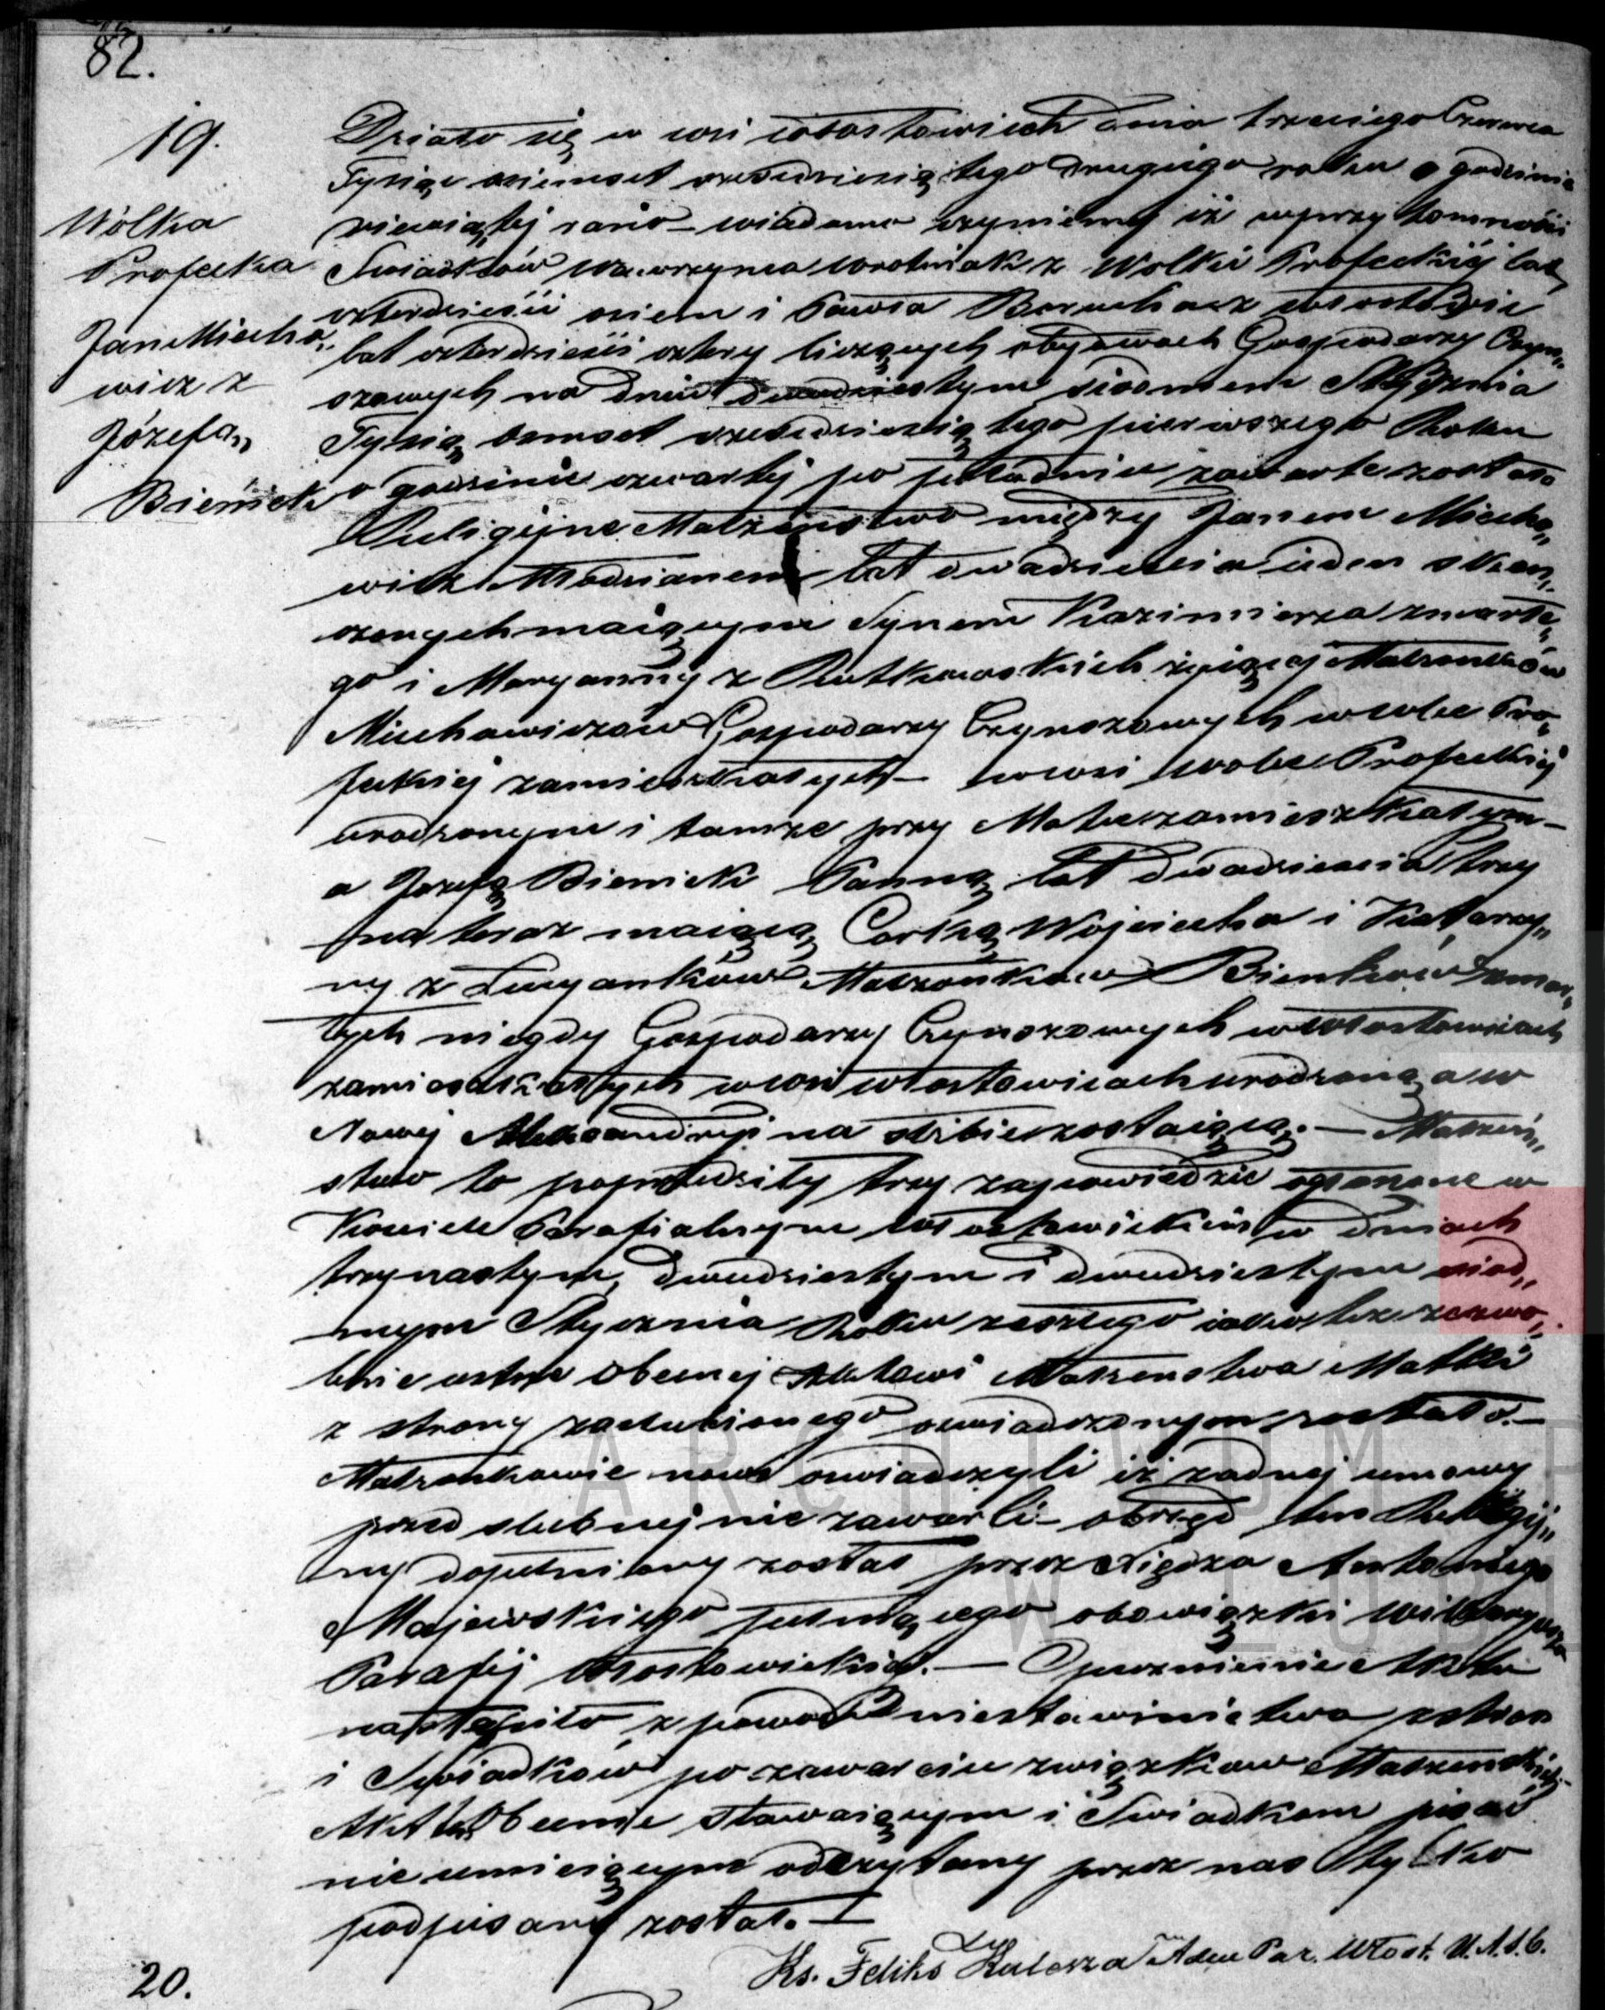 Jan Miechowicz Jozefa Bieniek Marriage Certificate - Copy.jpg